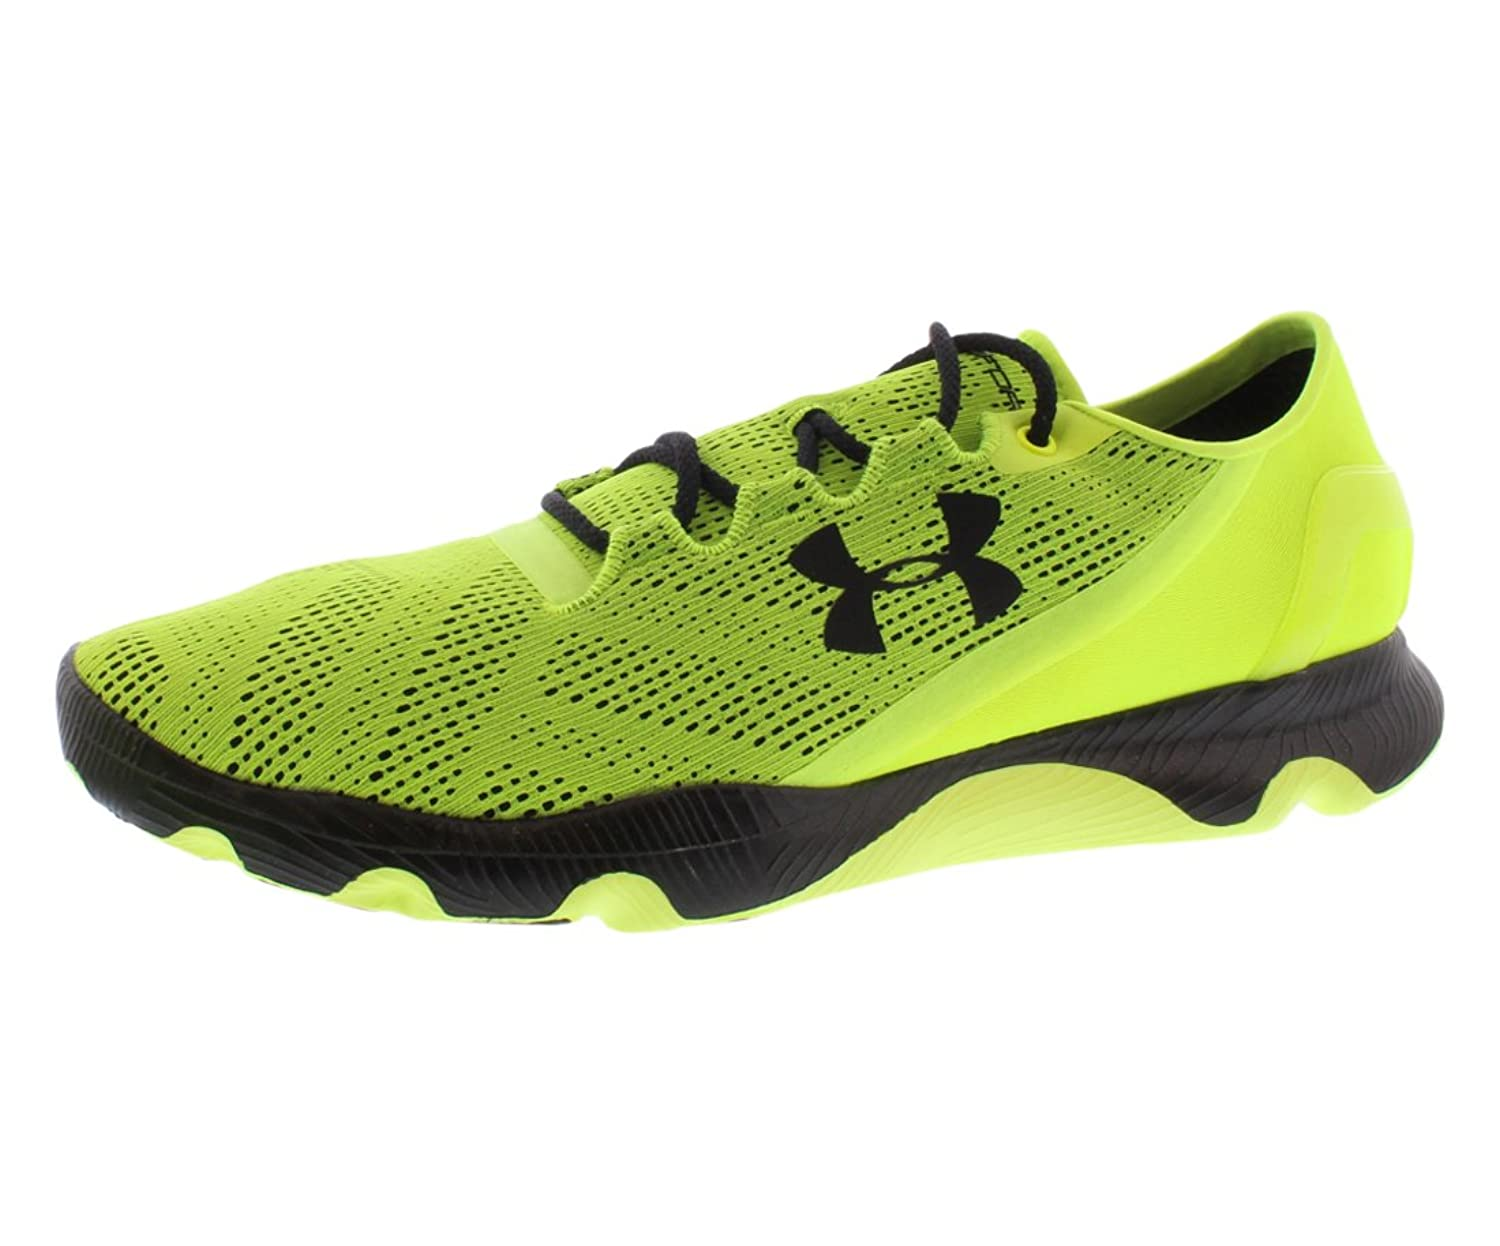 4f8939b596a2 30%OFF Under Armour Speedform Apollo Vent Running Shoes - SS15 ...